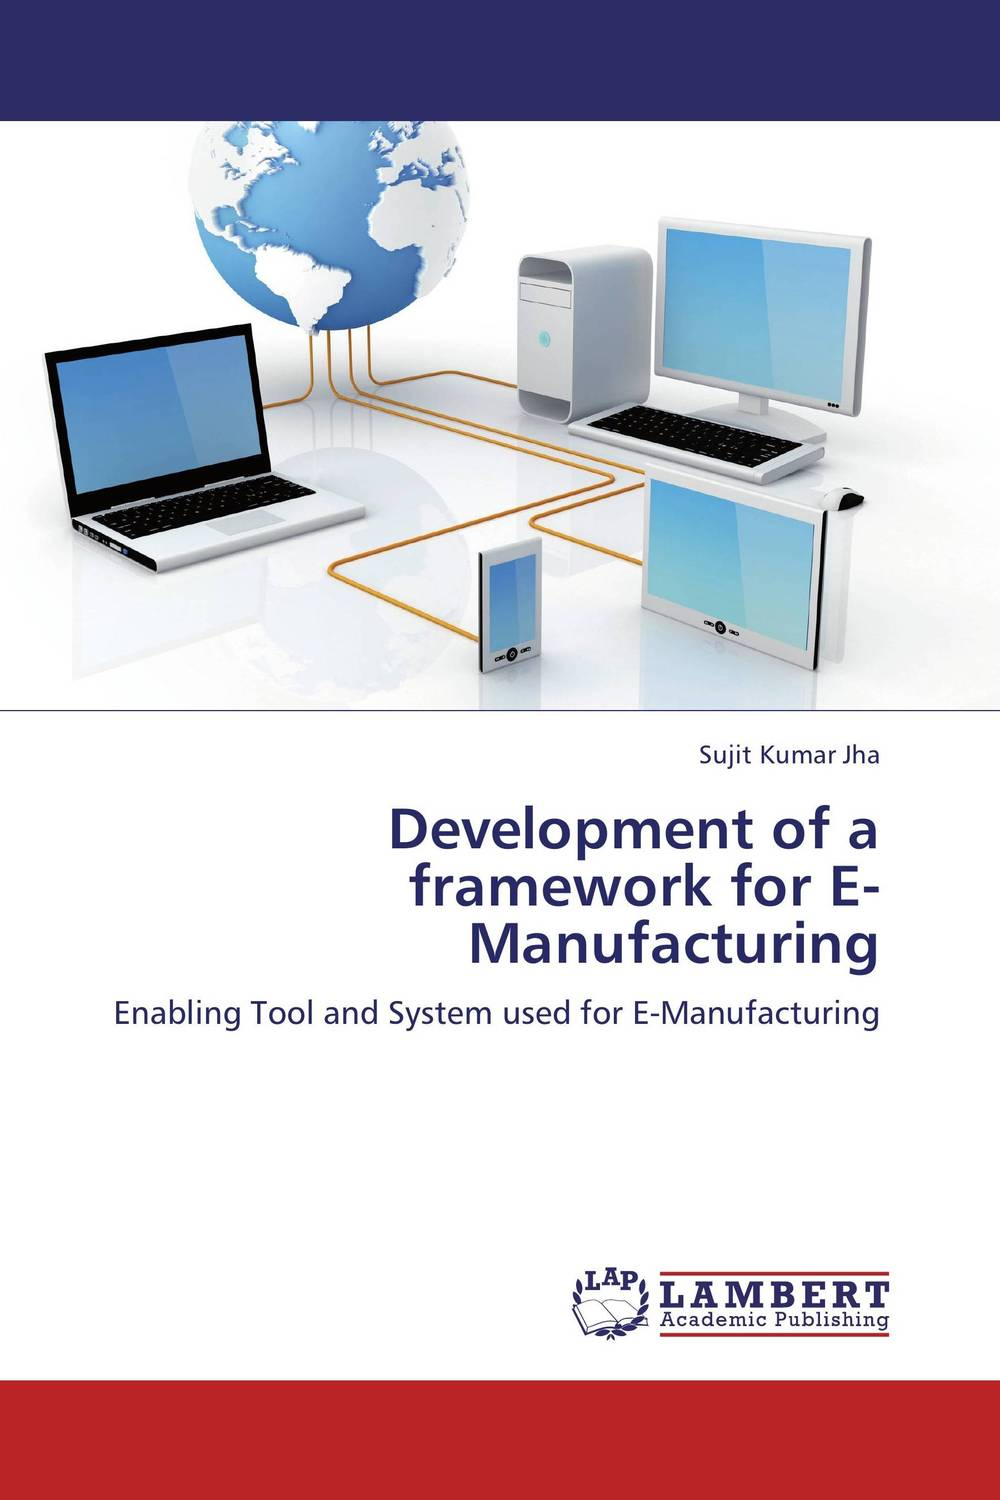 Development of a framework for E-Manufacturing a group agent architecture based on fipa and ontology